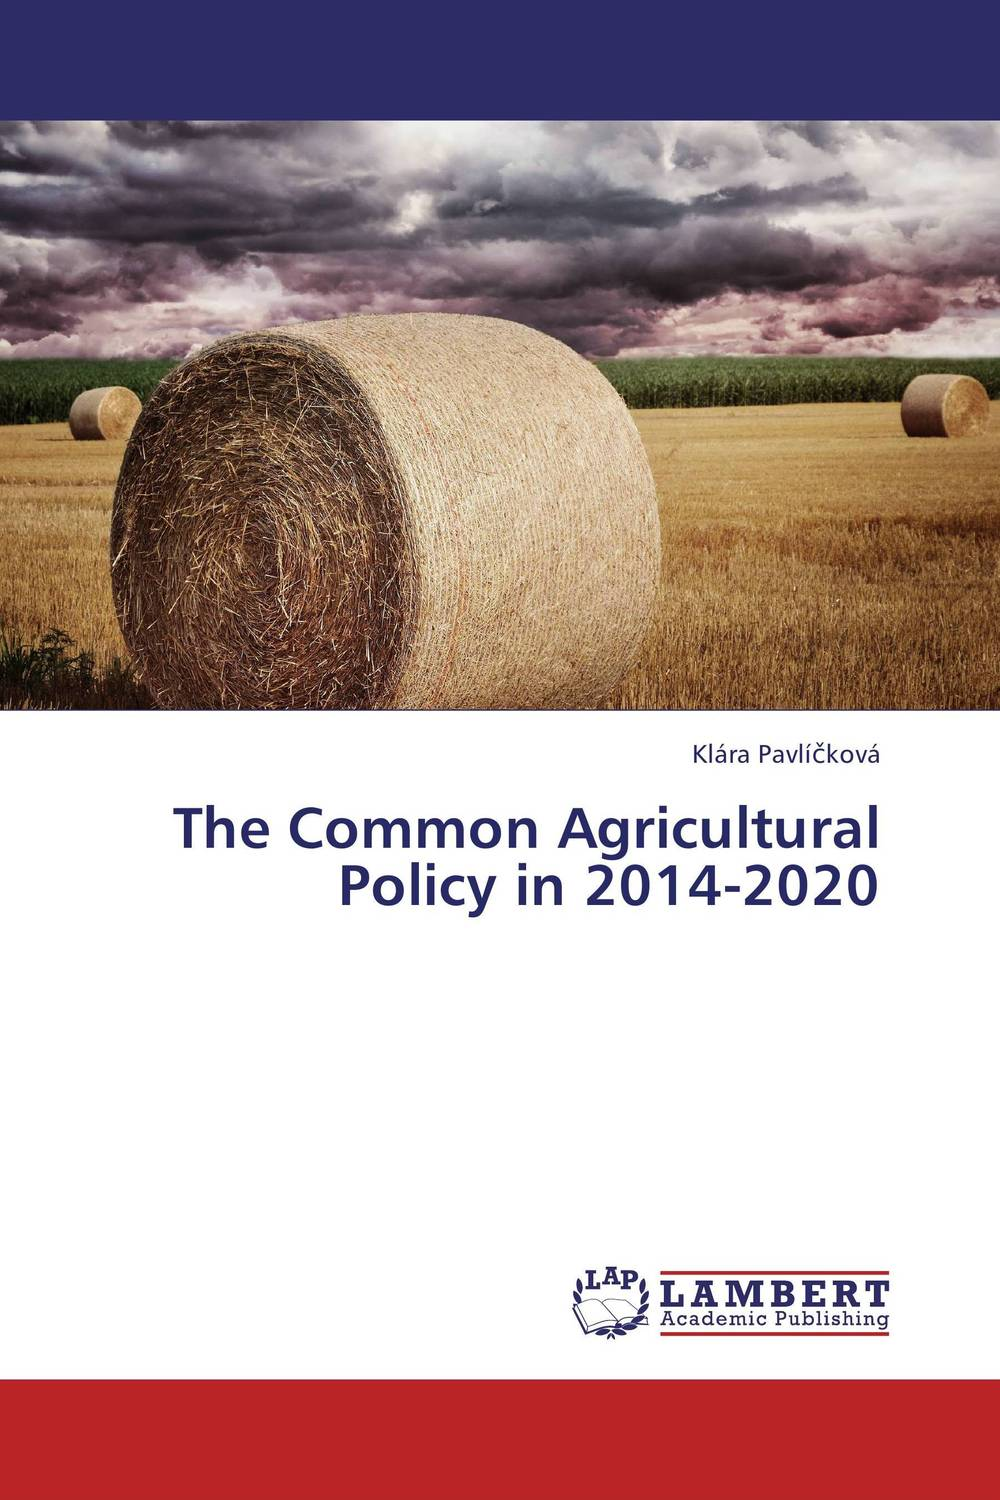 The Common Agricultural Policy in 2014-2020 delegate